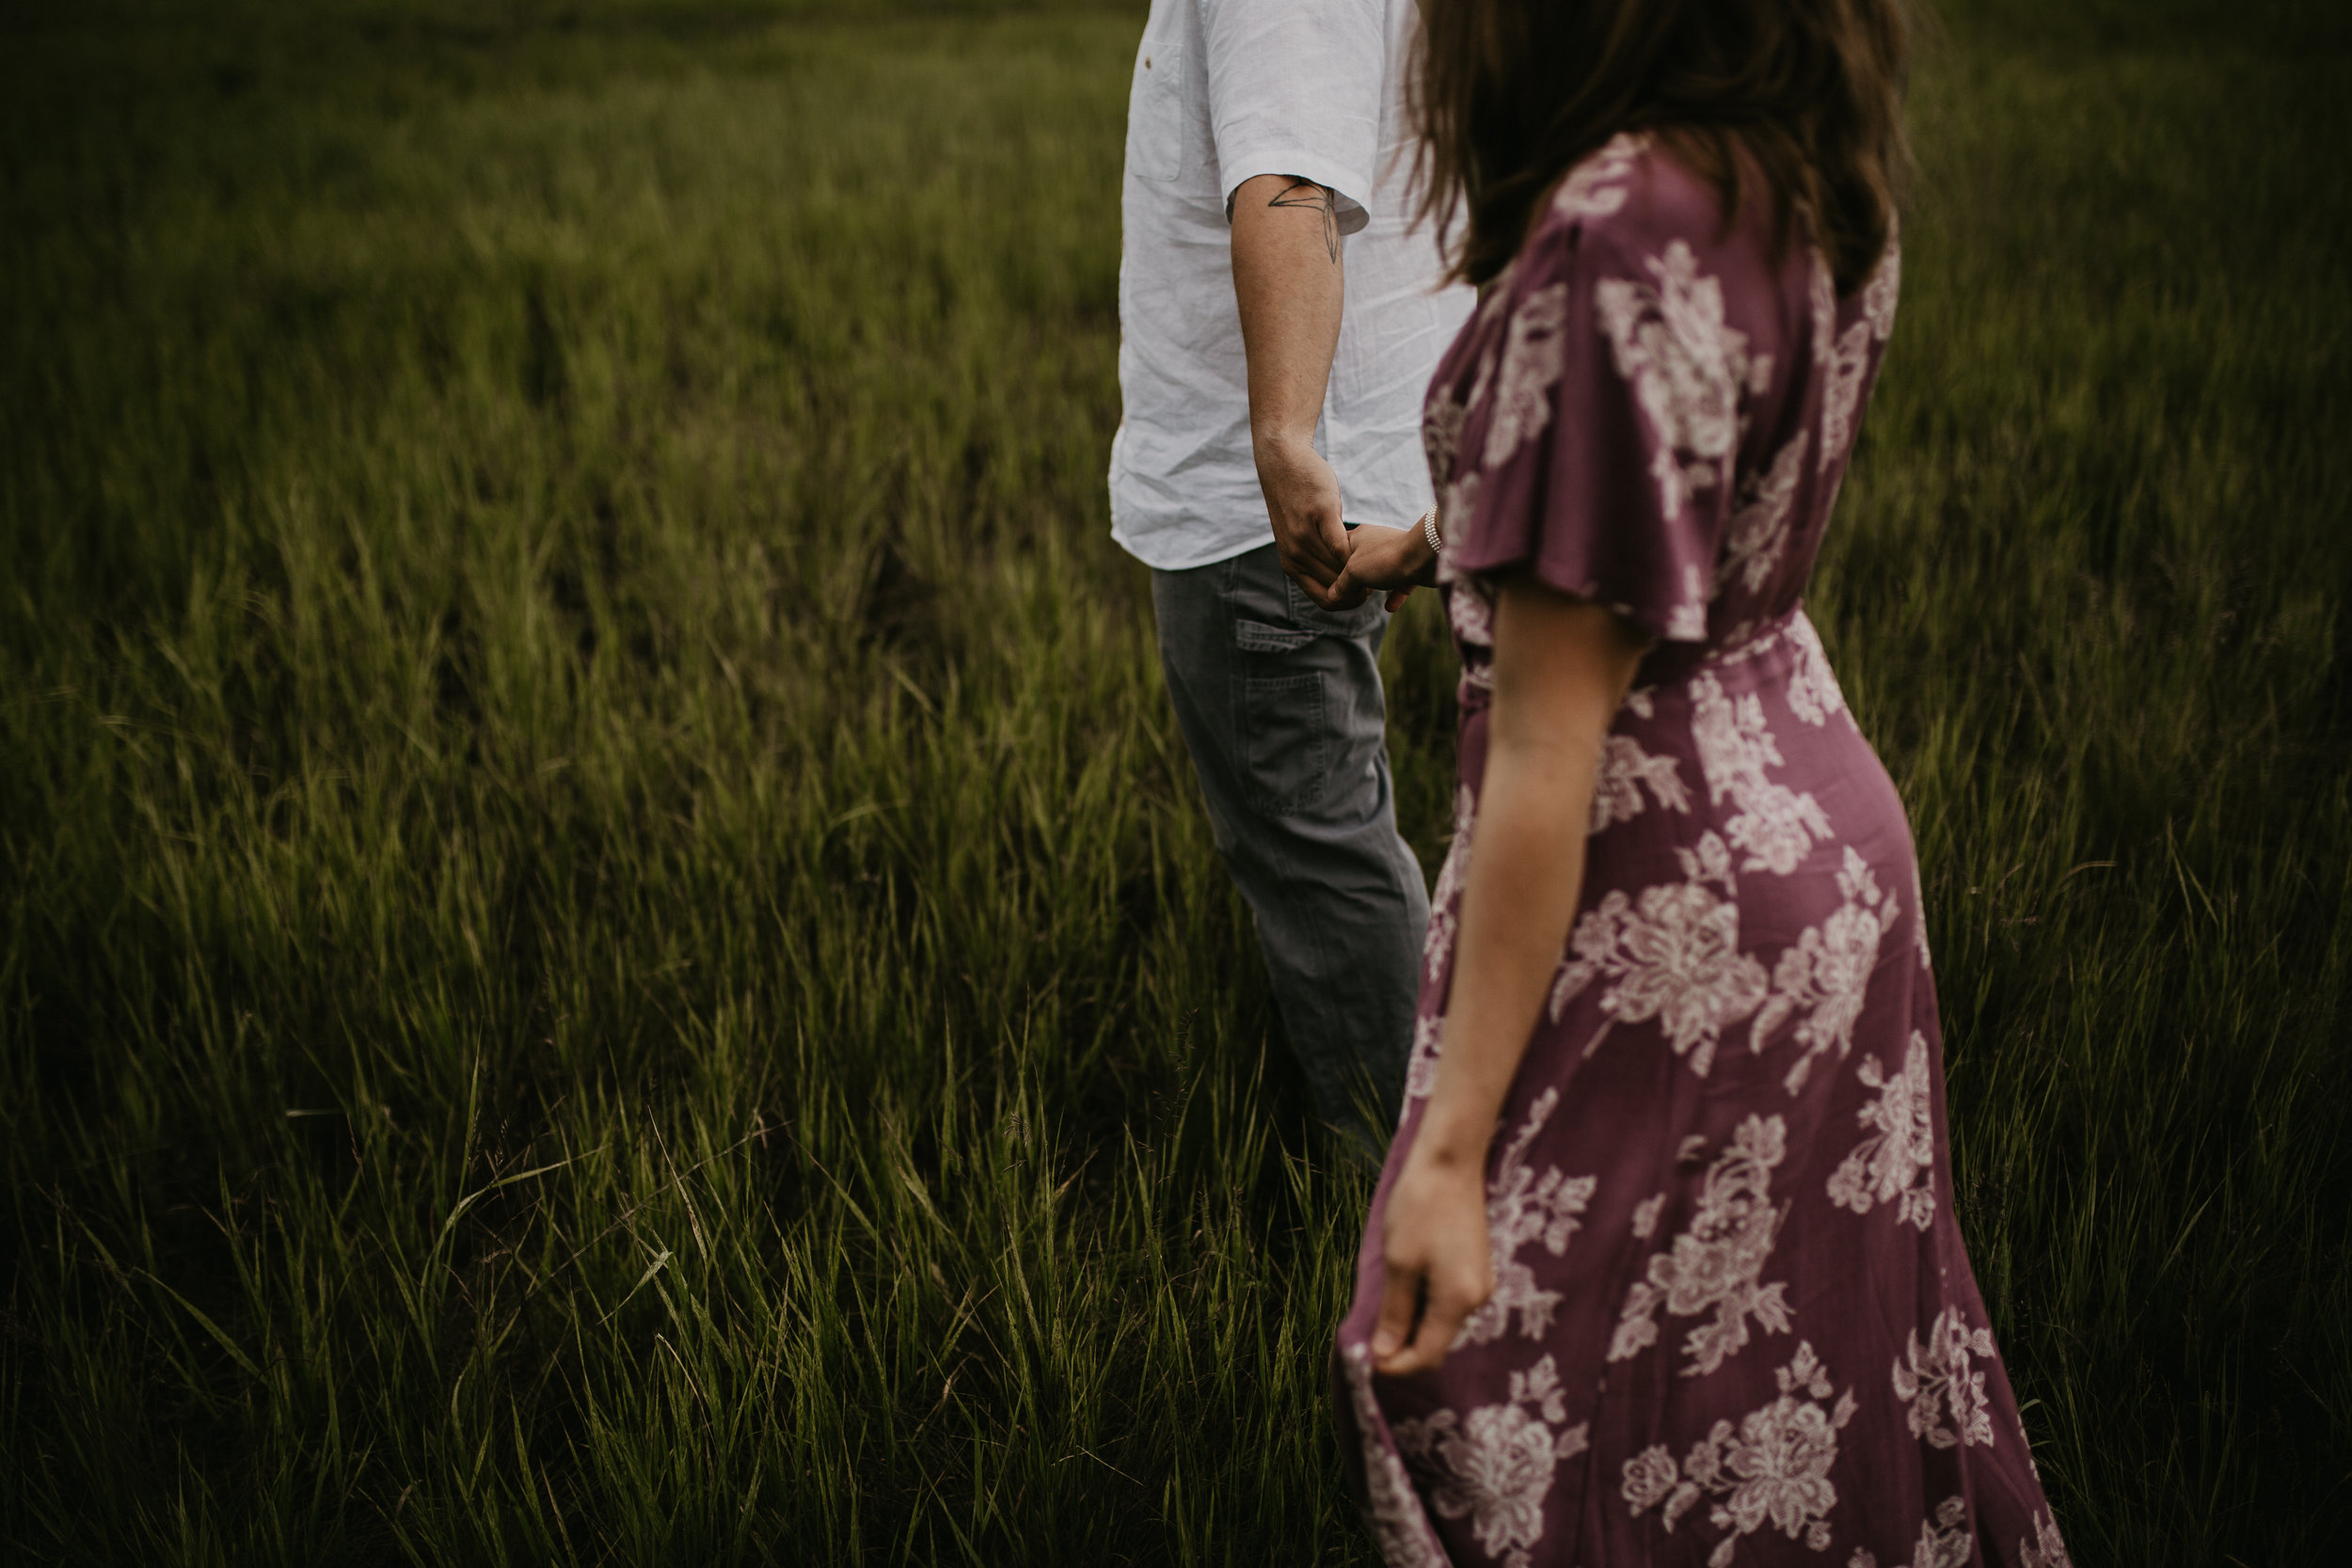 Rainy day engagement session in Coeur d Alene, Idaho